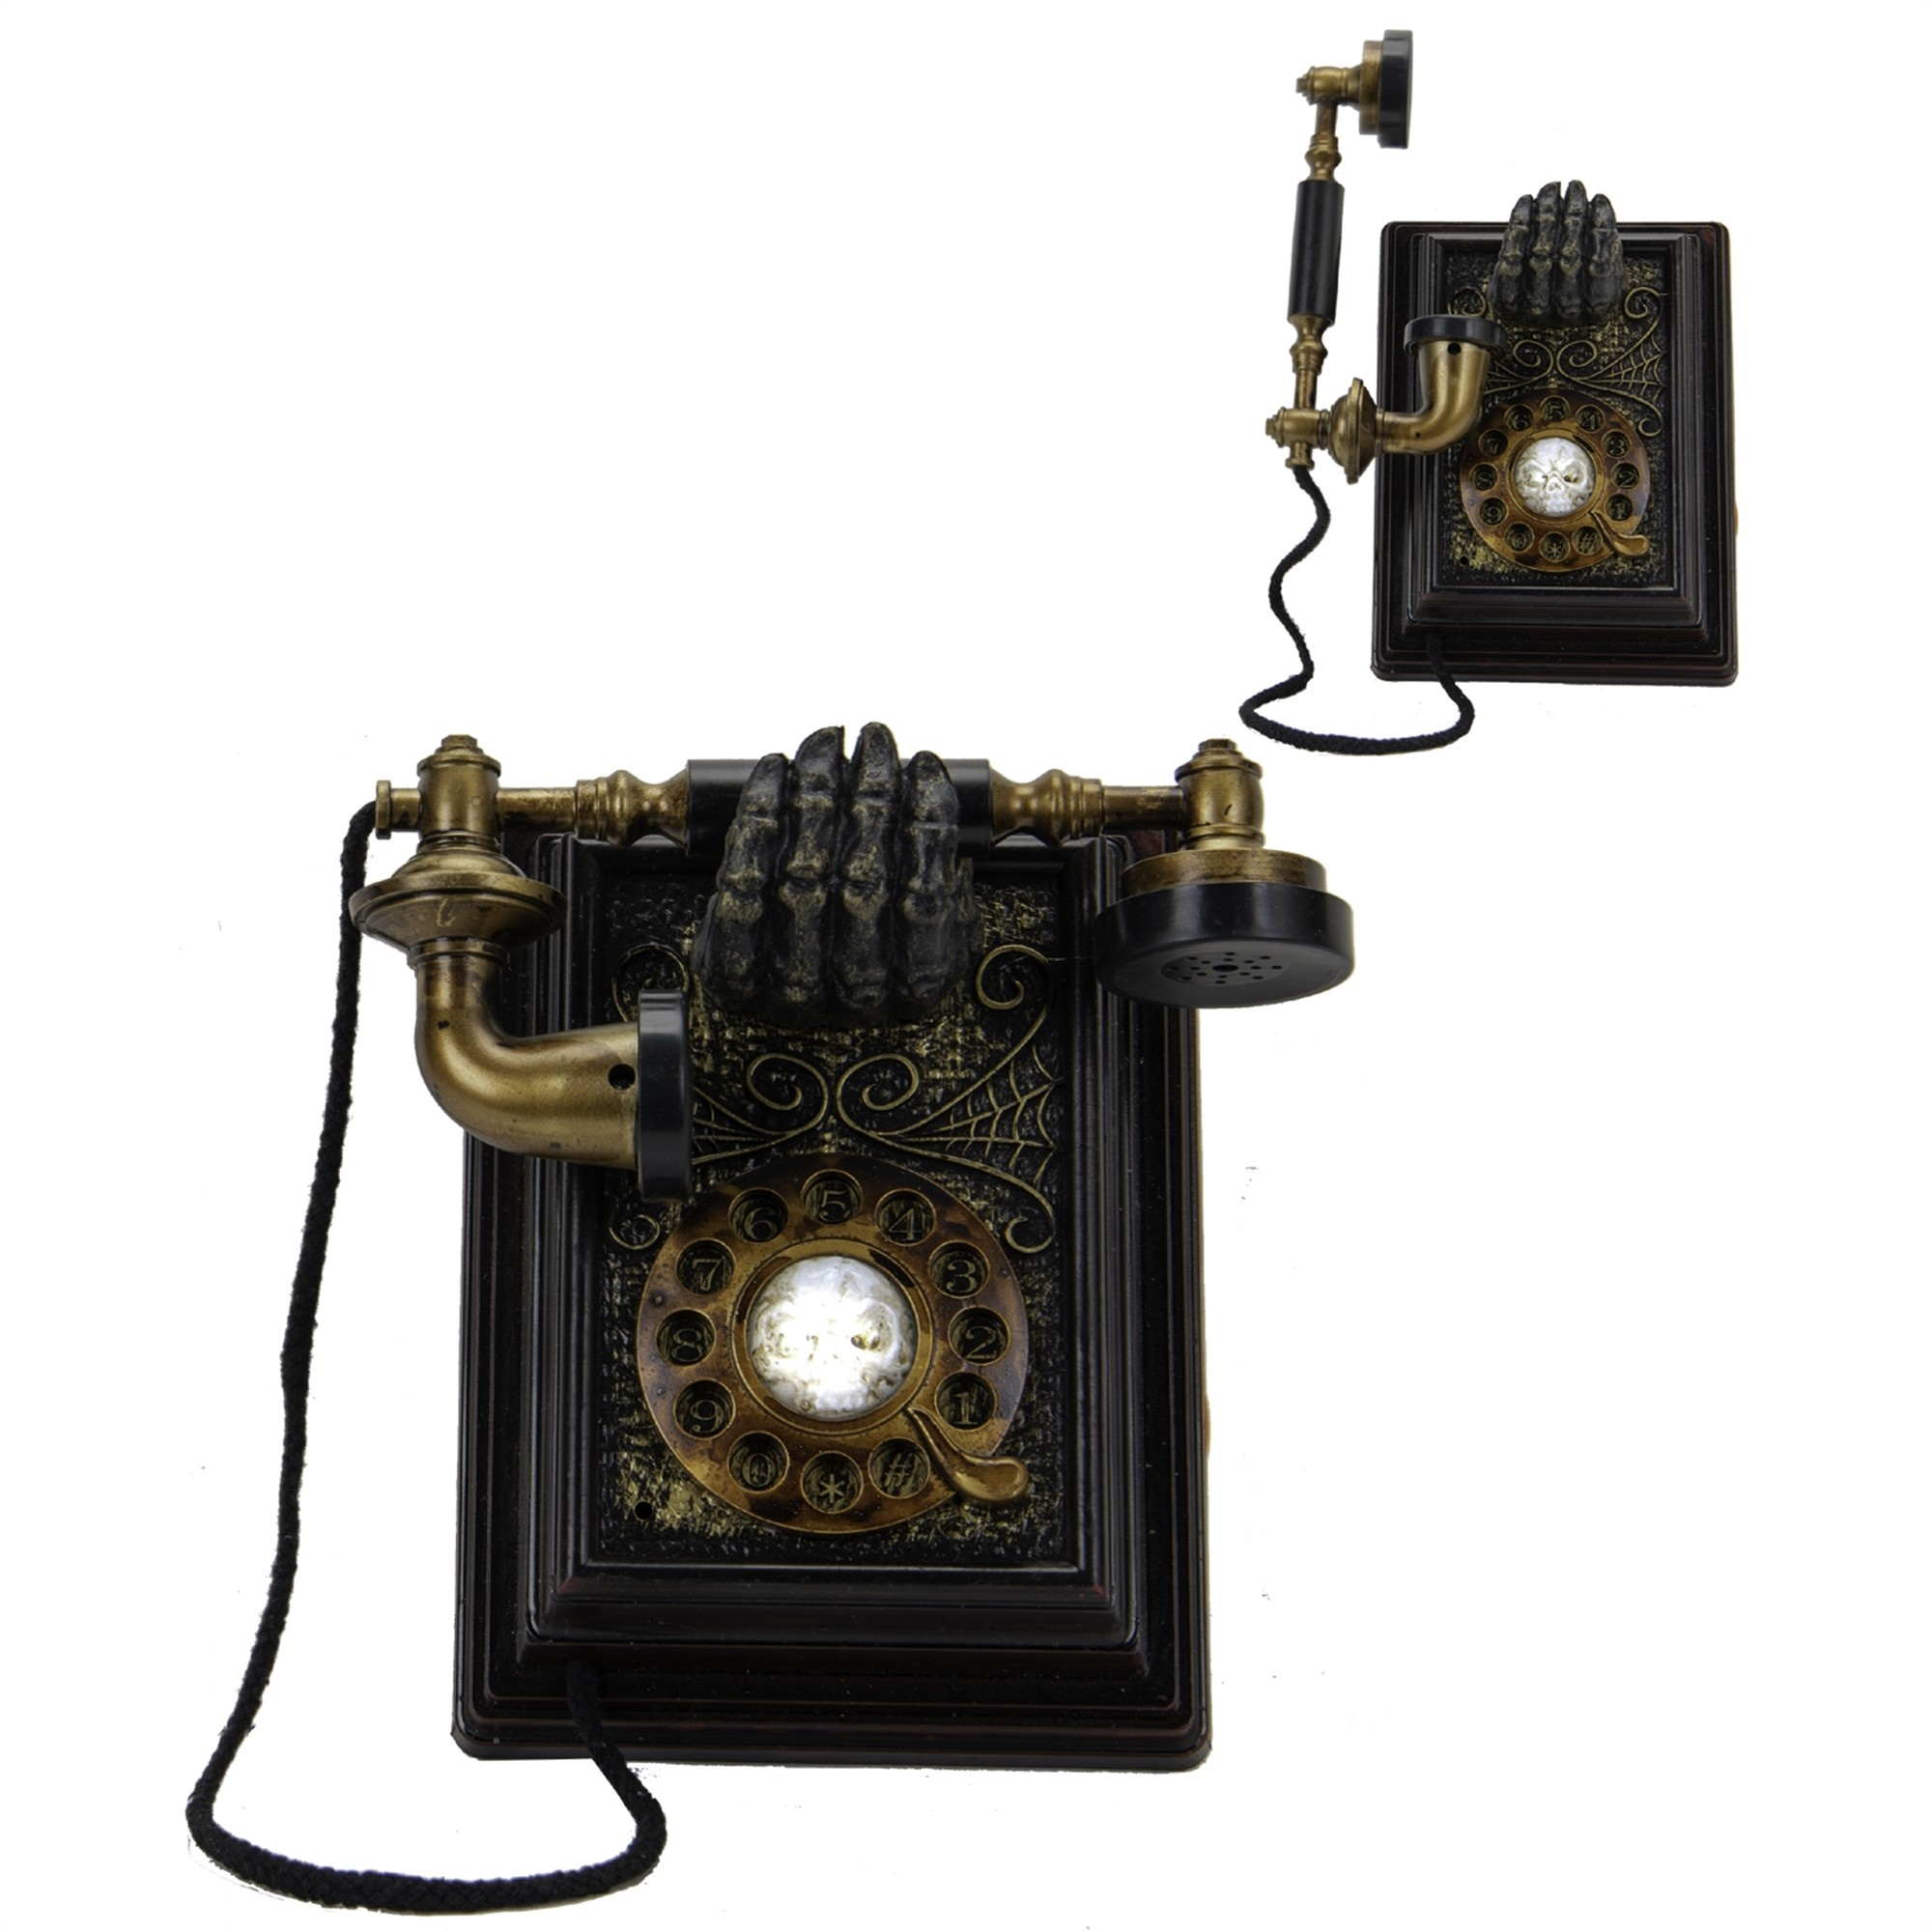 Animated Spooky Telephone Decor